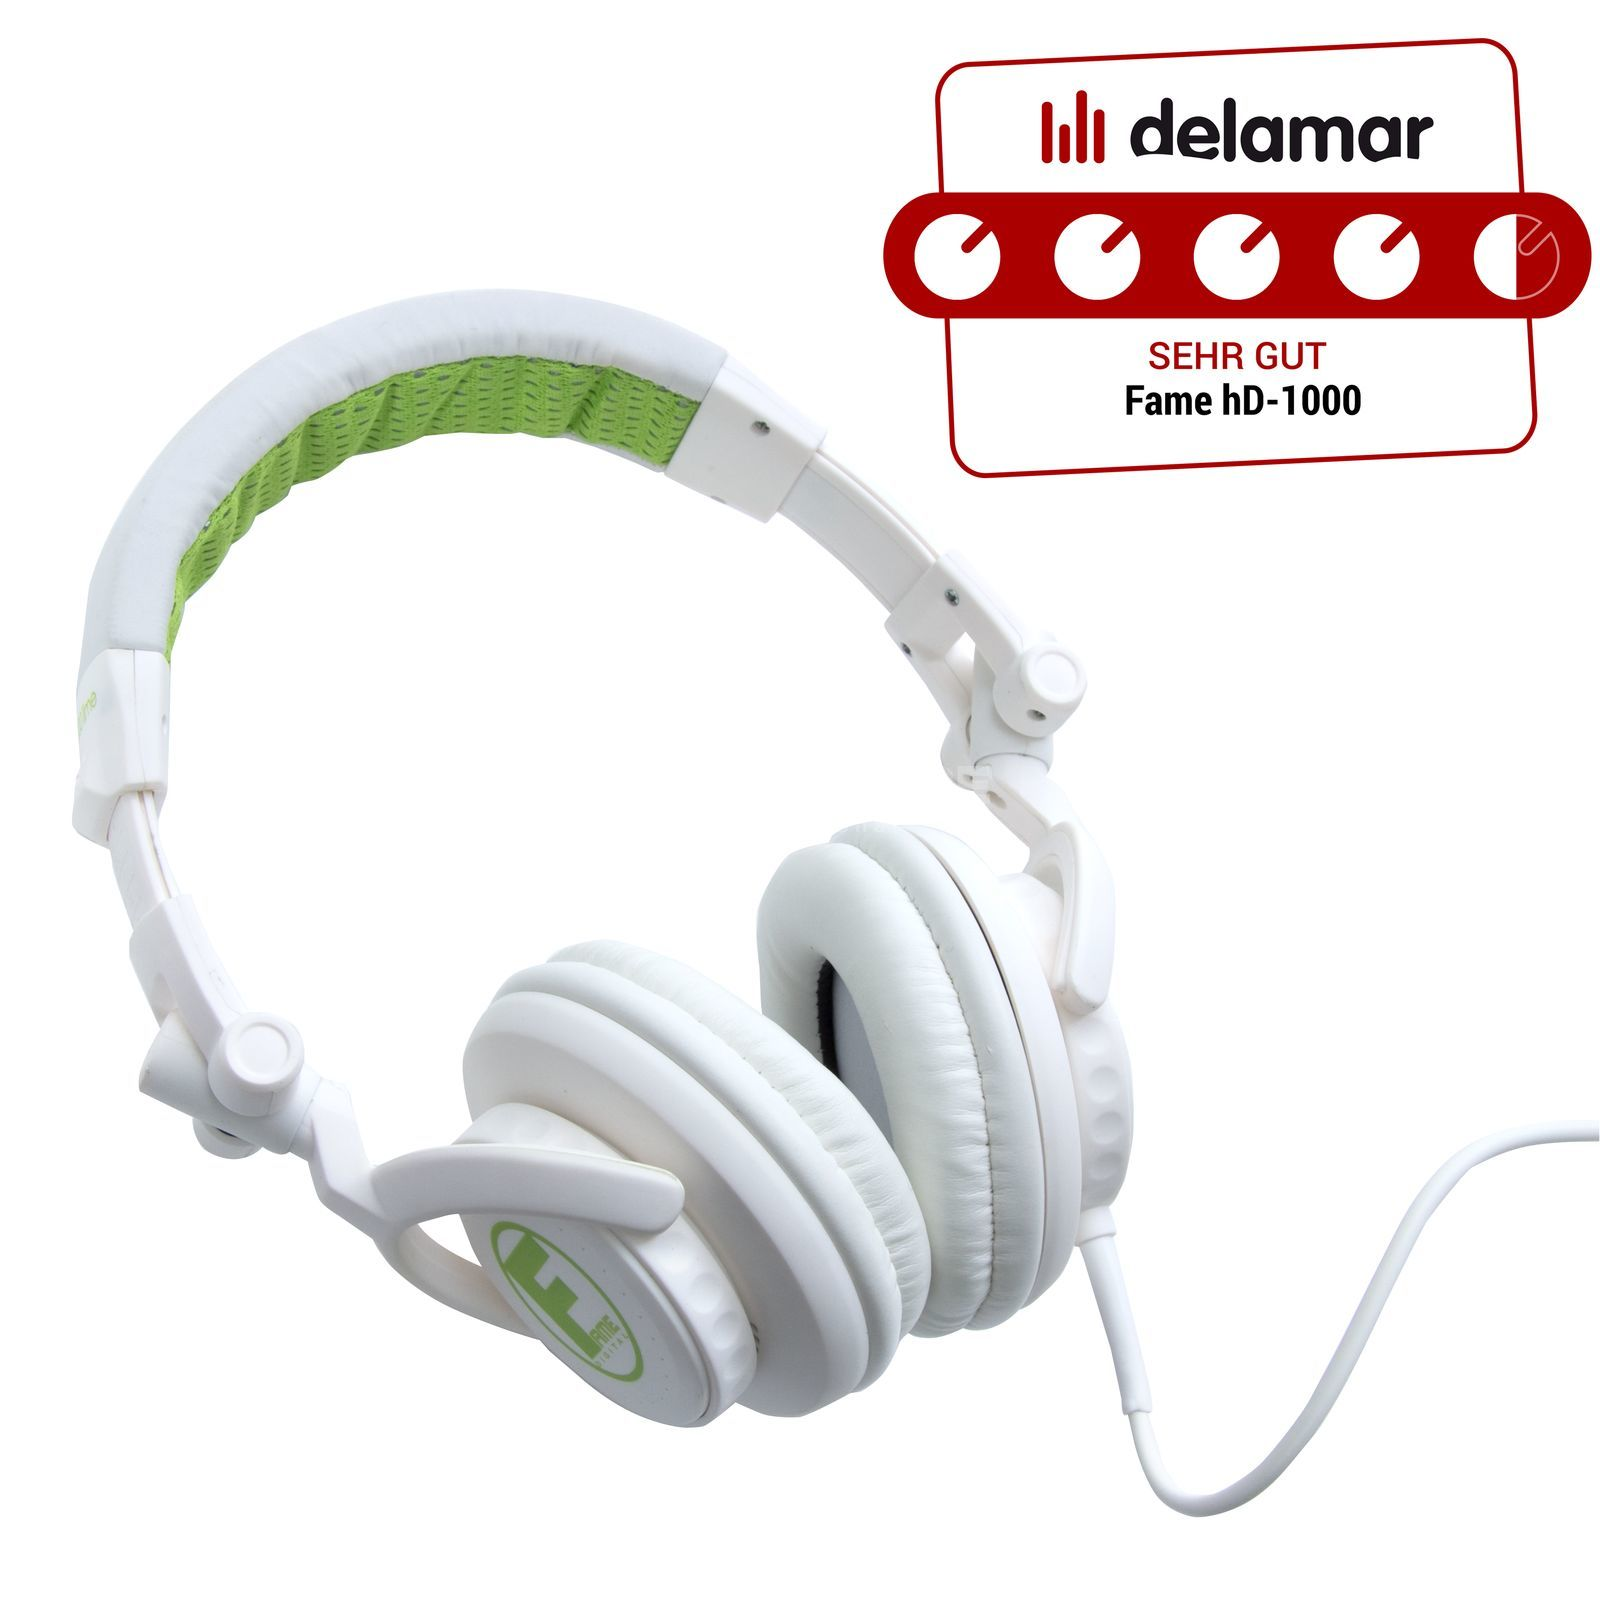 Fame audio hD-1000 Lime DJ Headphones White And Lime, 3m Cable Изображение товара